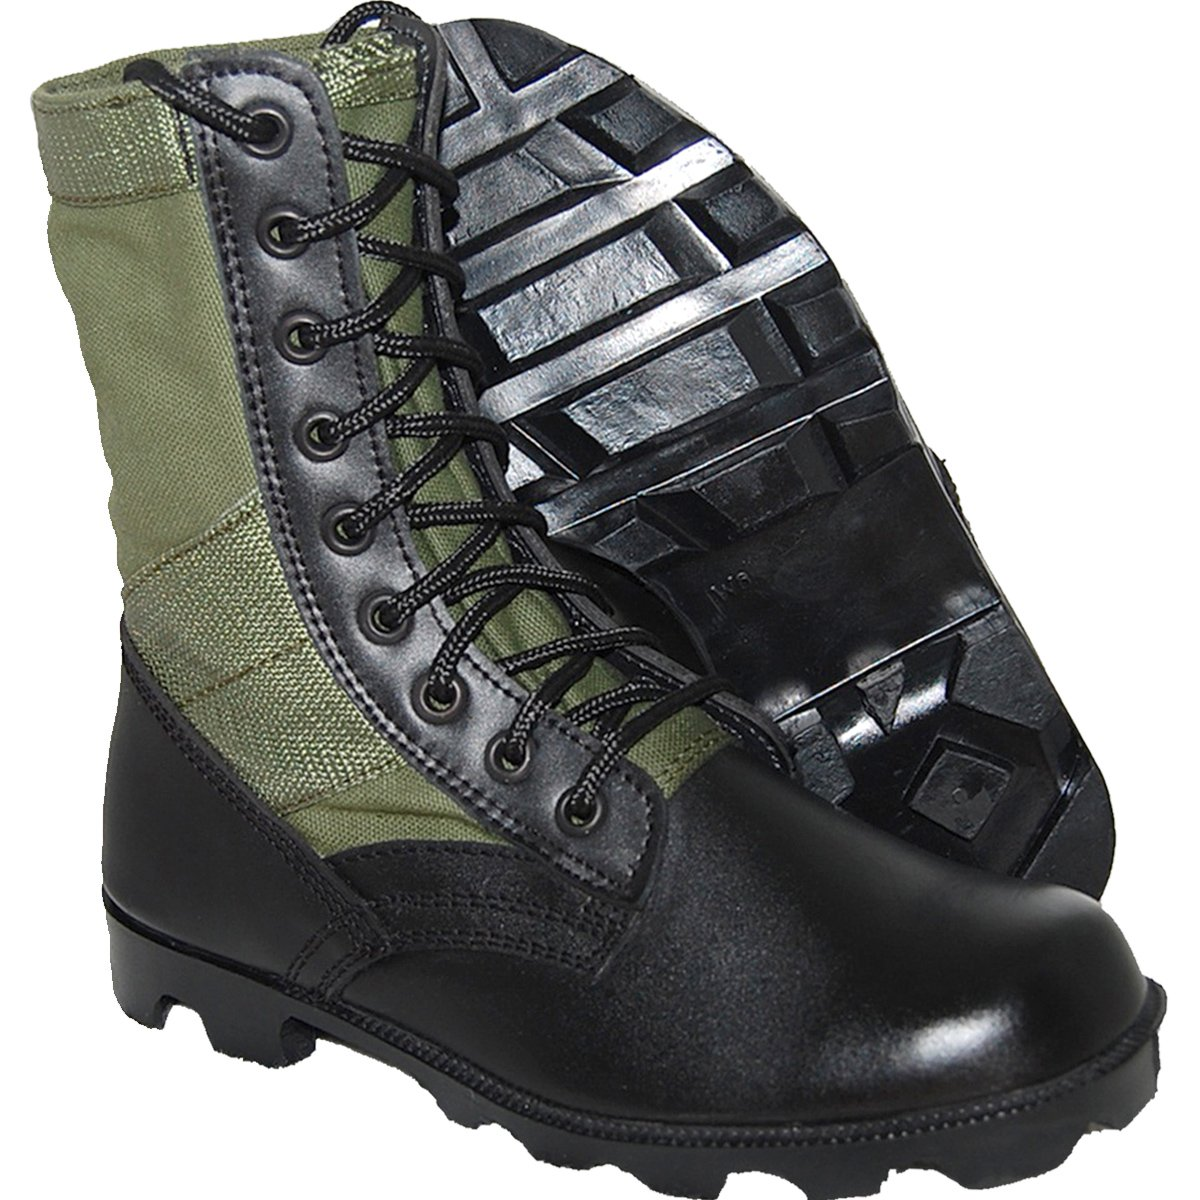 KRAZY SHOE ARTISTS Jungle Boot 8 Inch Leather Black Green Tactical Men's Combat Size 10